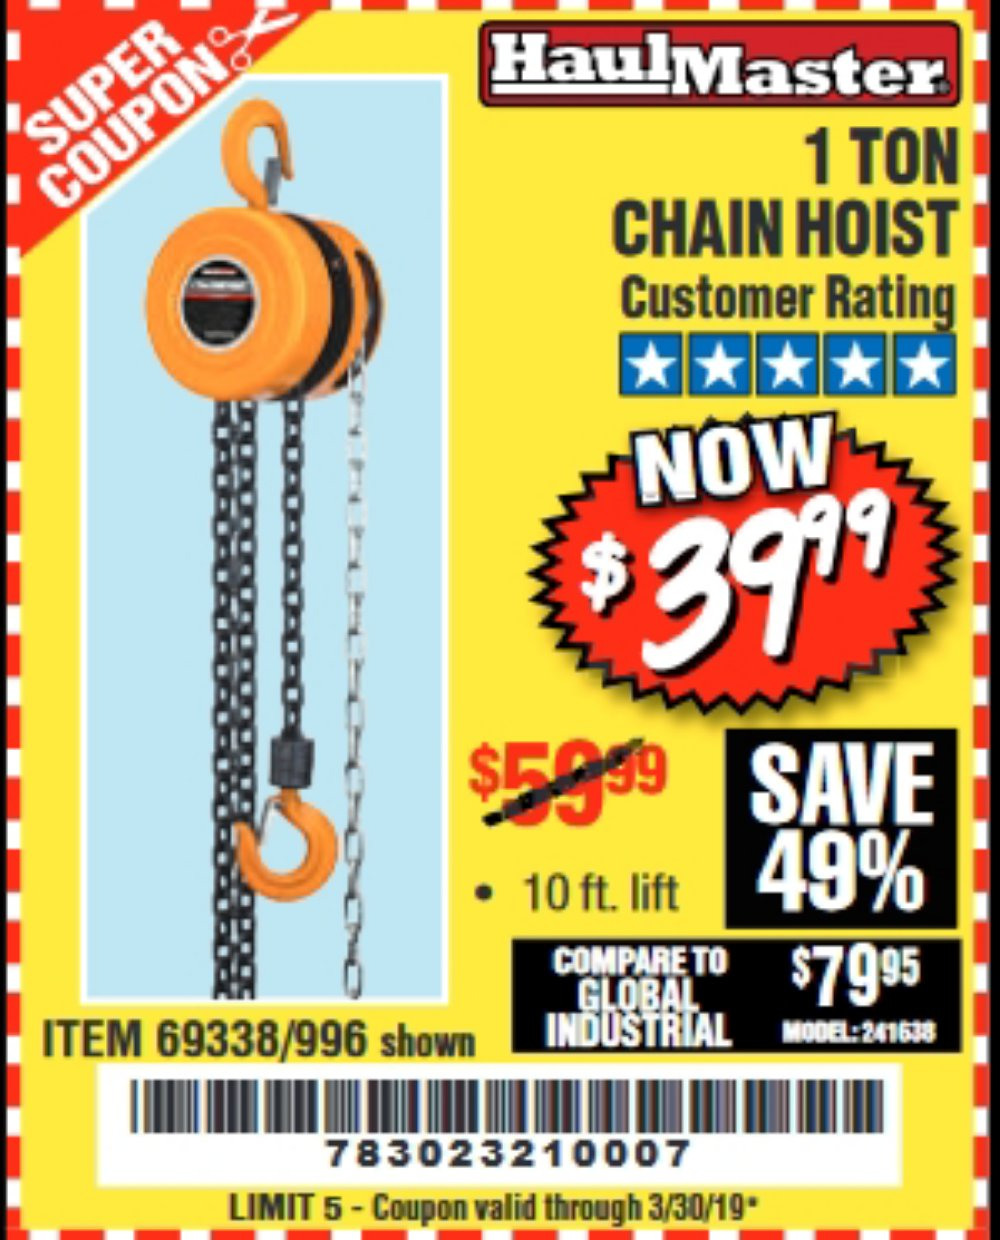 Harbor Freight Coupon, HF Coupons - 1 Ton Chain Hoist